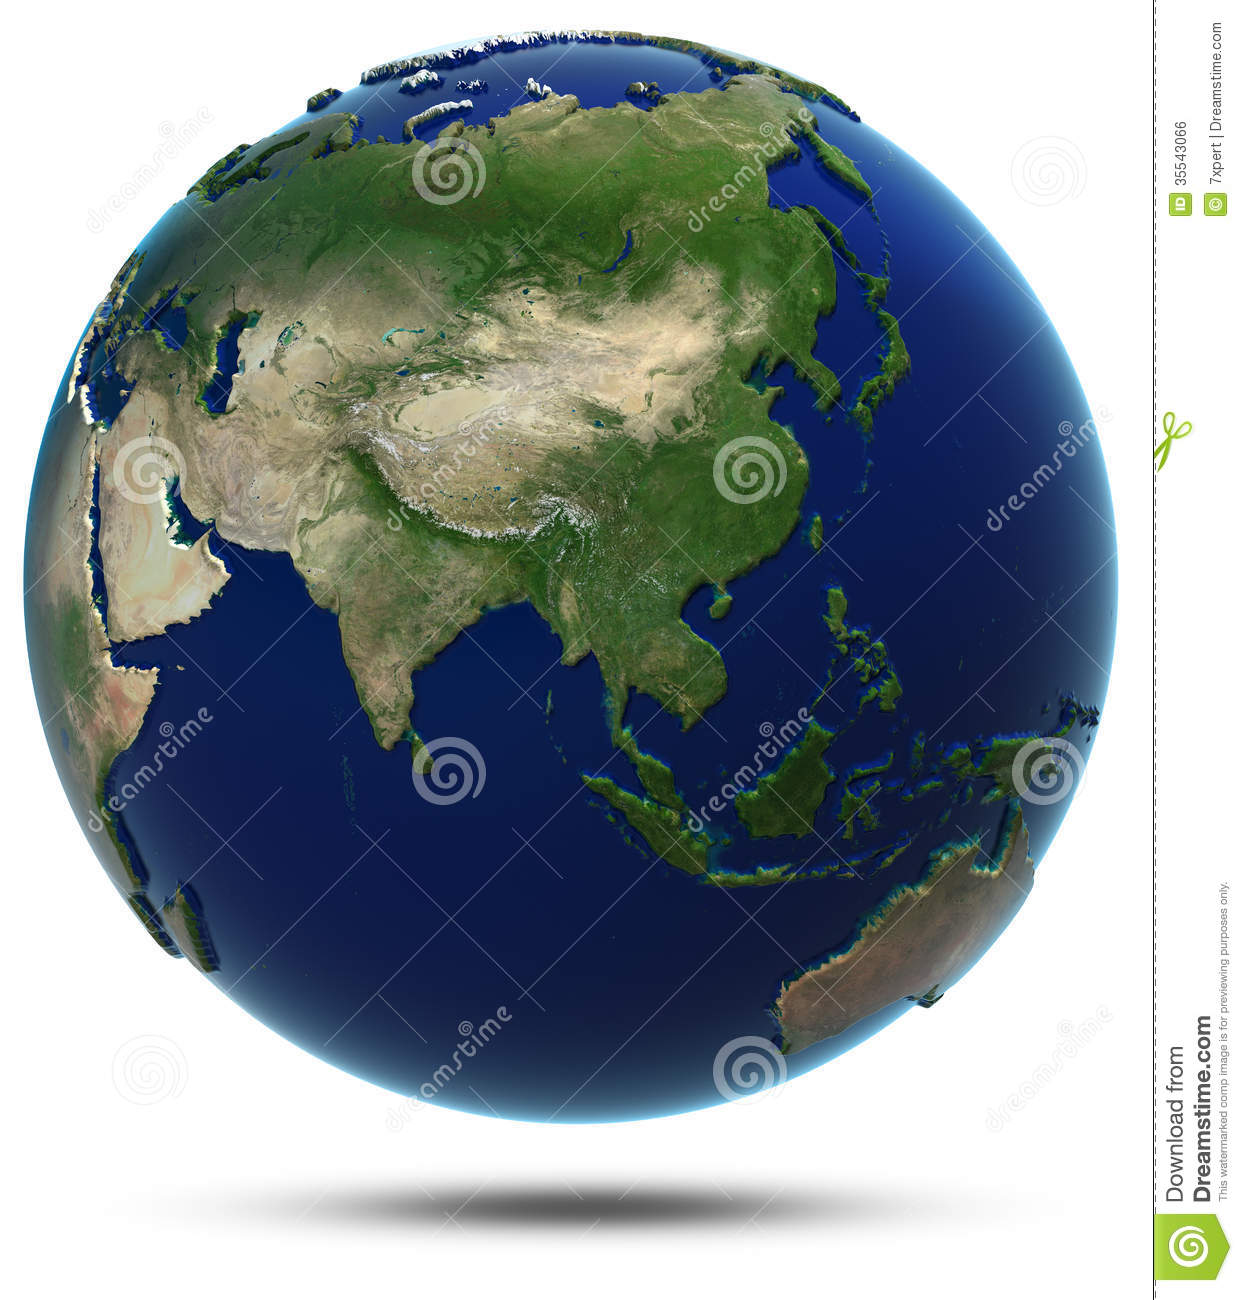 Asia world map stock illustration image of ecology continent asia world map gumiabroncs Choice Image